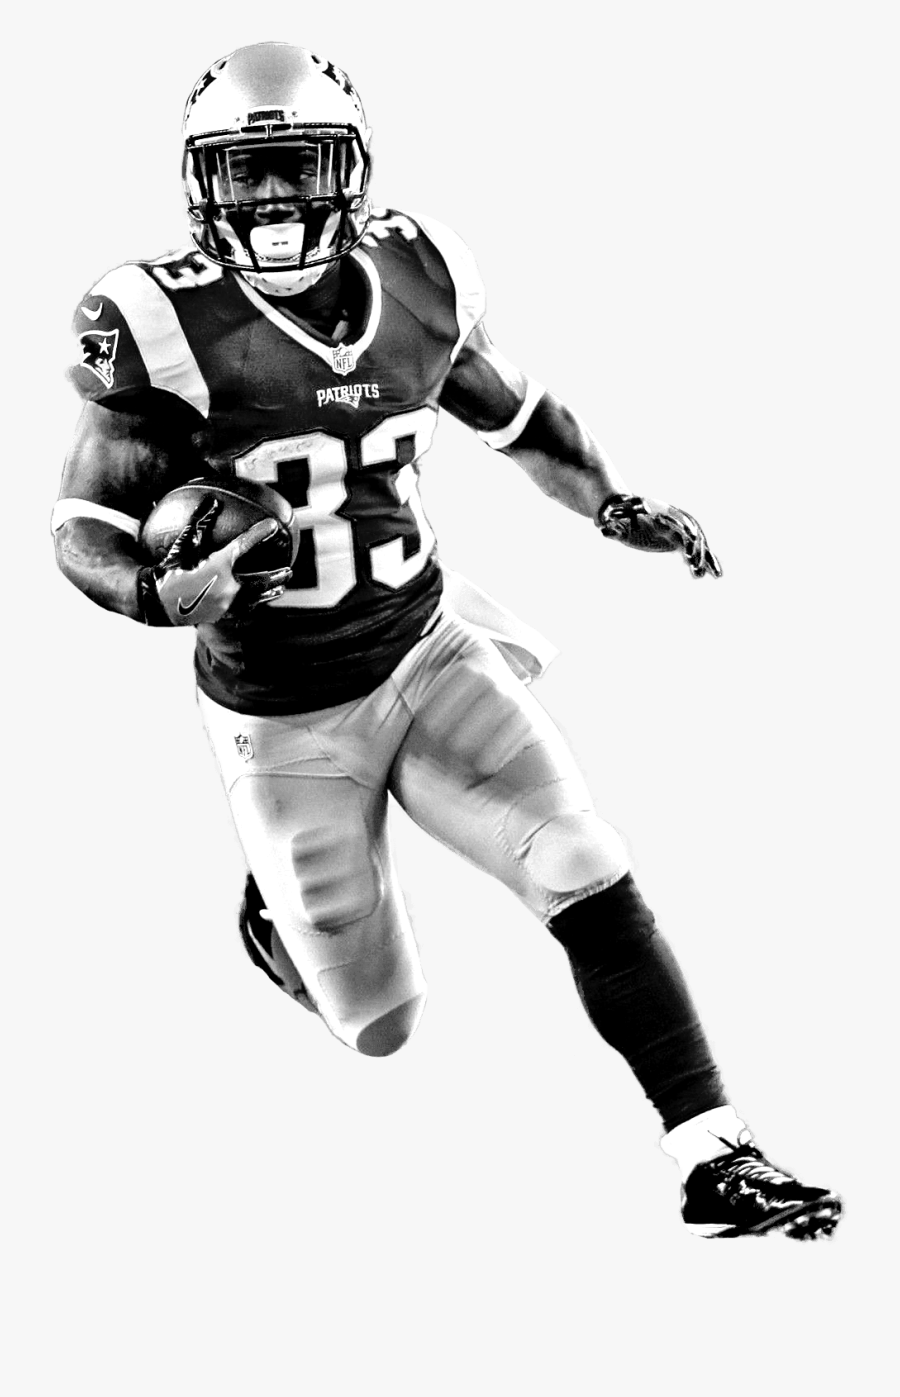 Football Player Png, Transparent Clipart